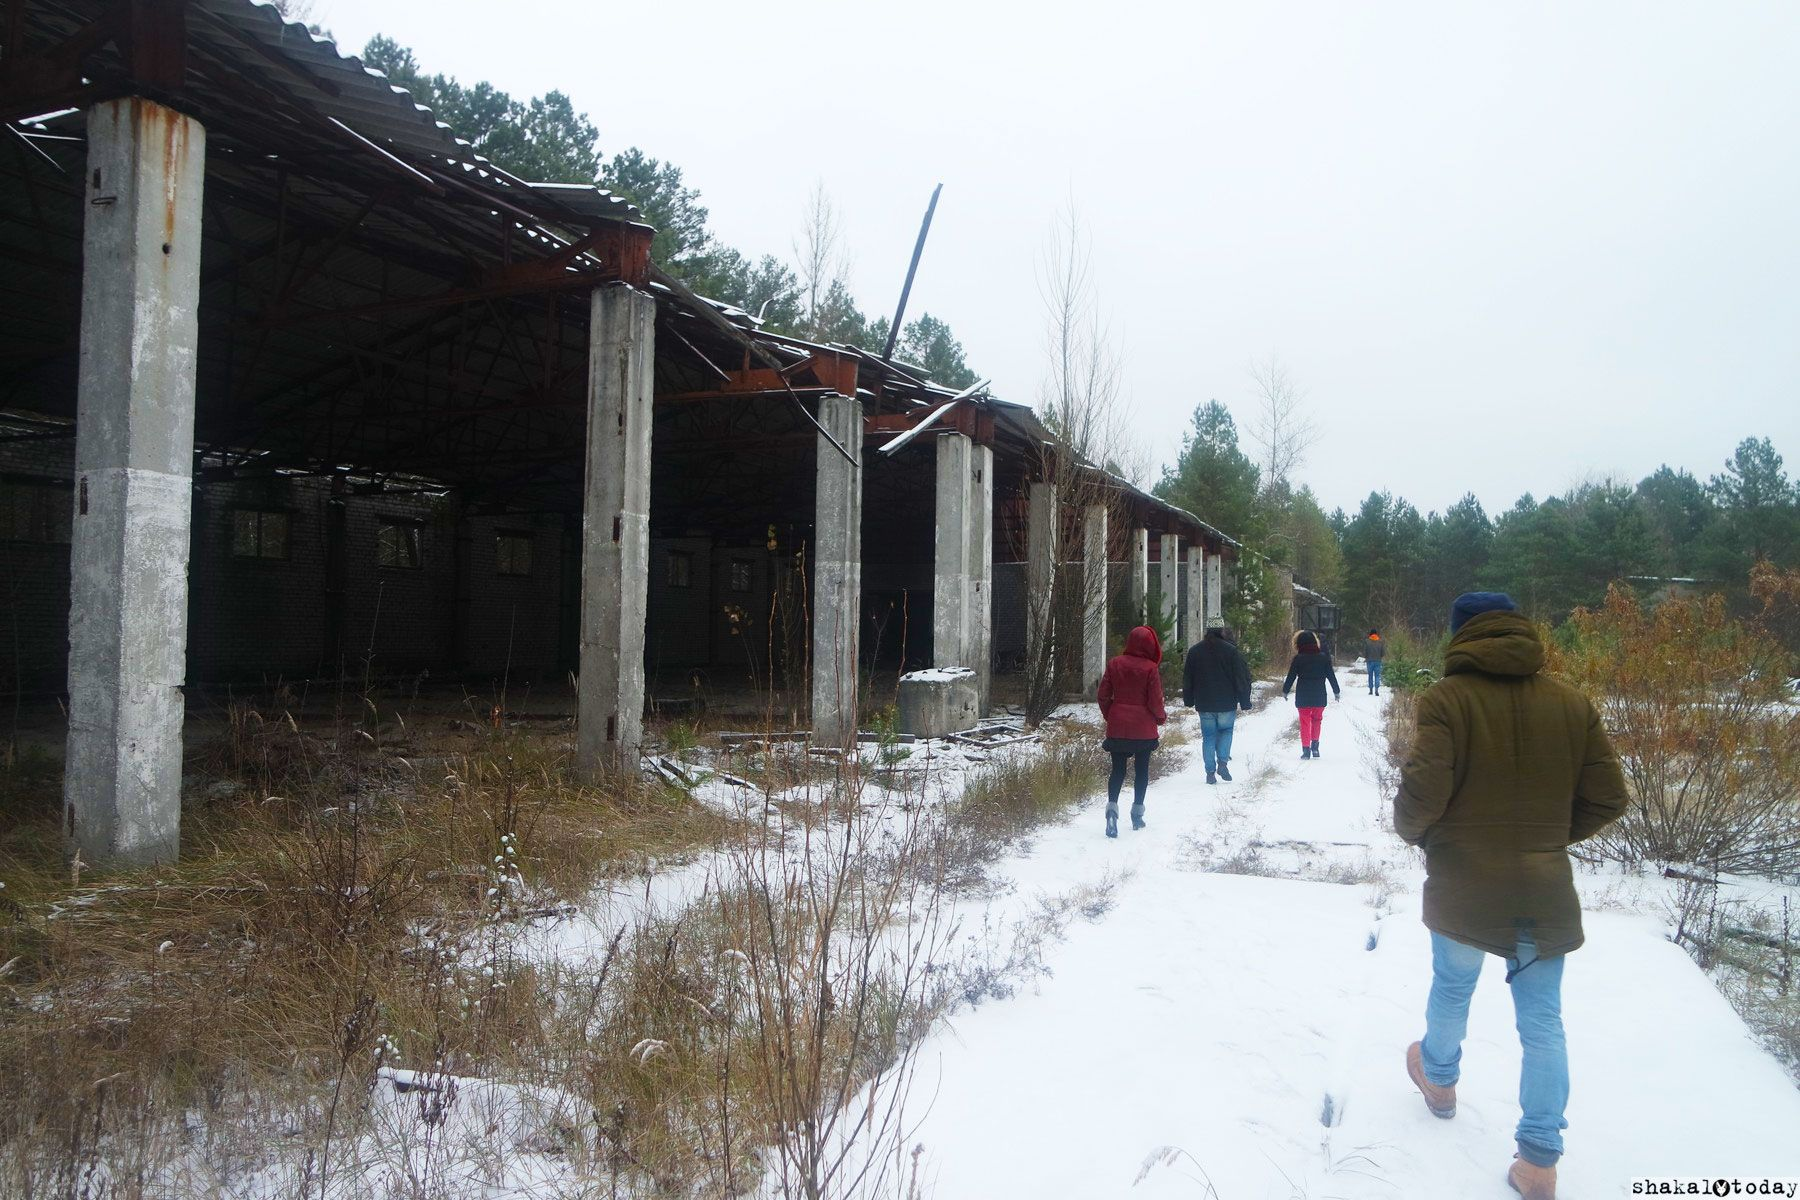 Shakal-Today-Pripyat-0020.jpg